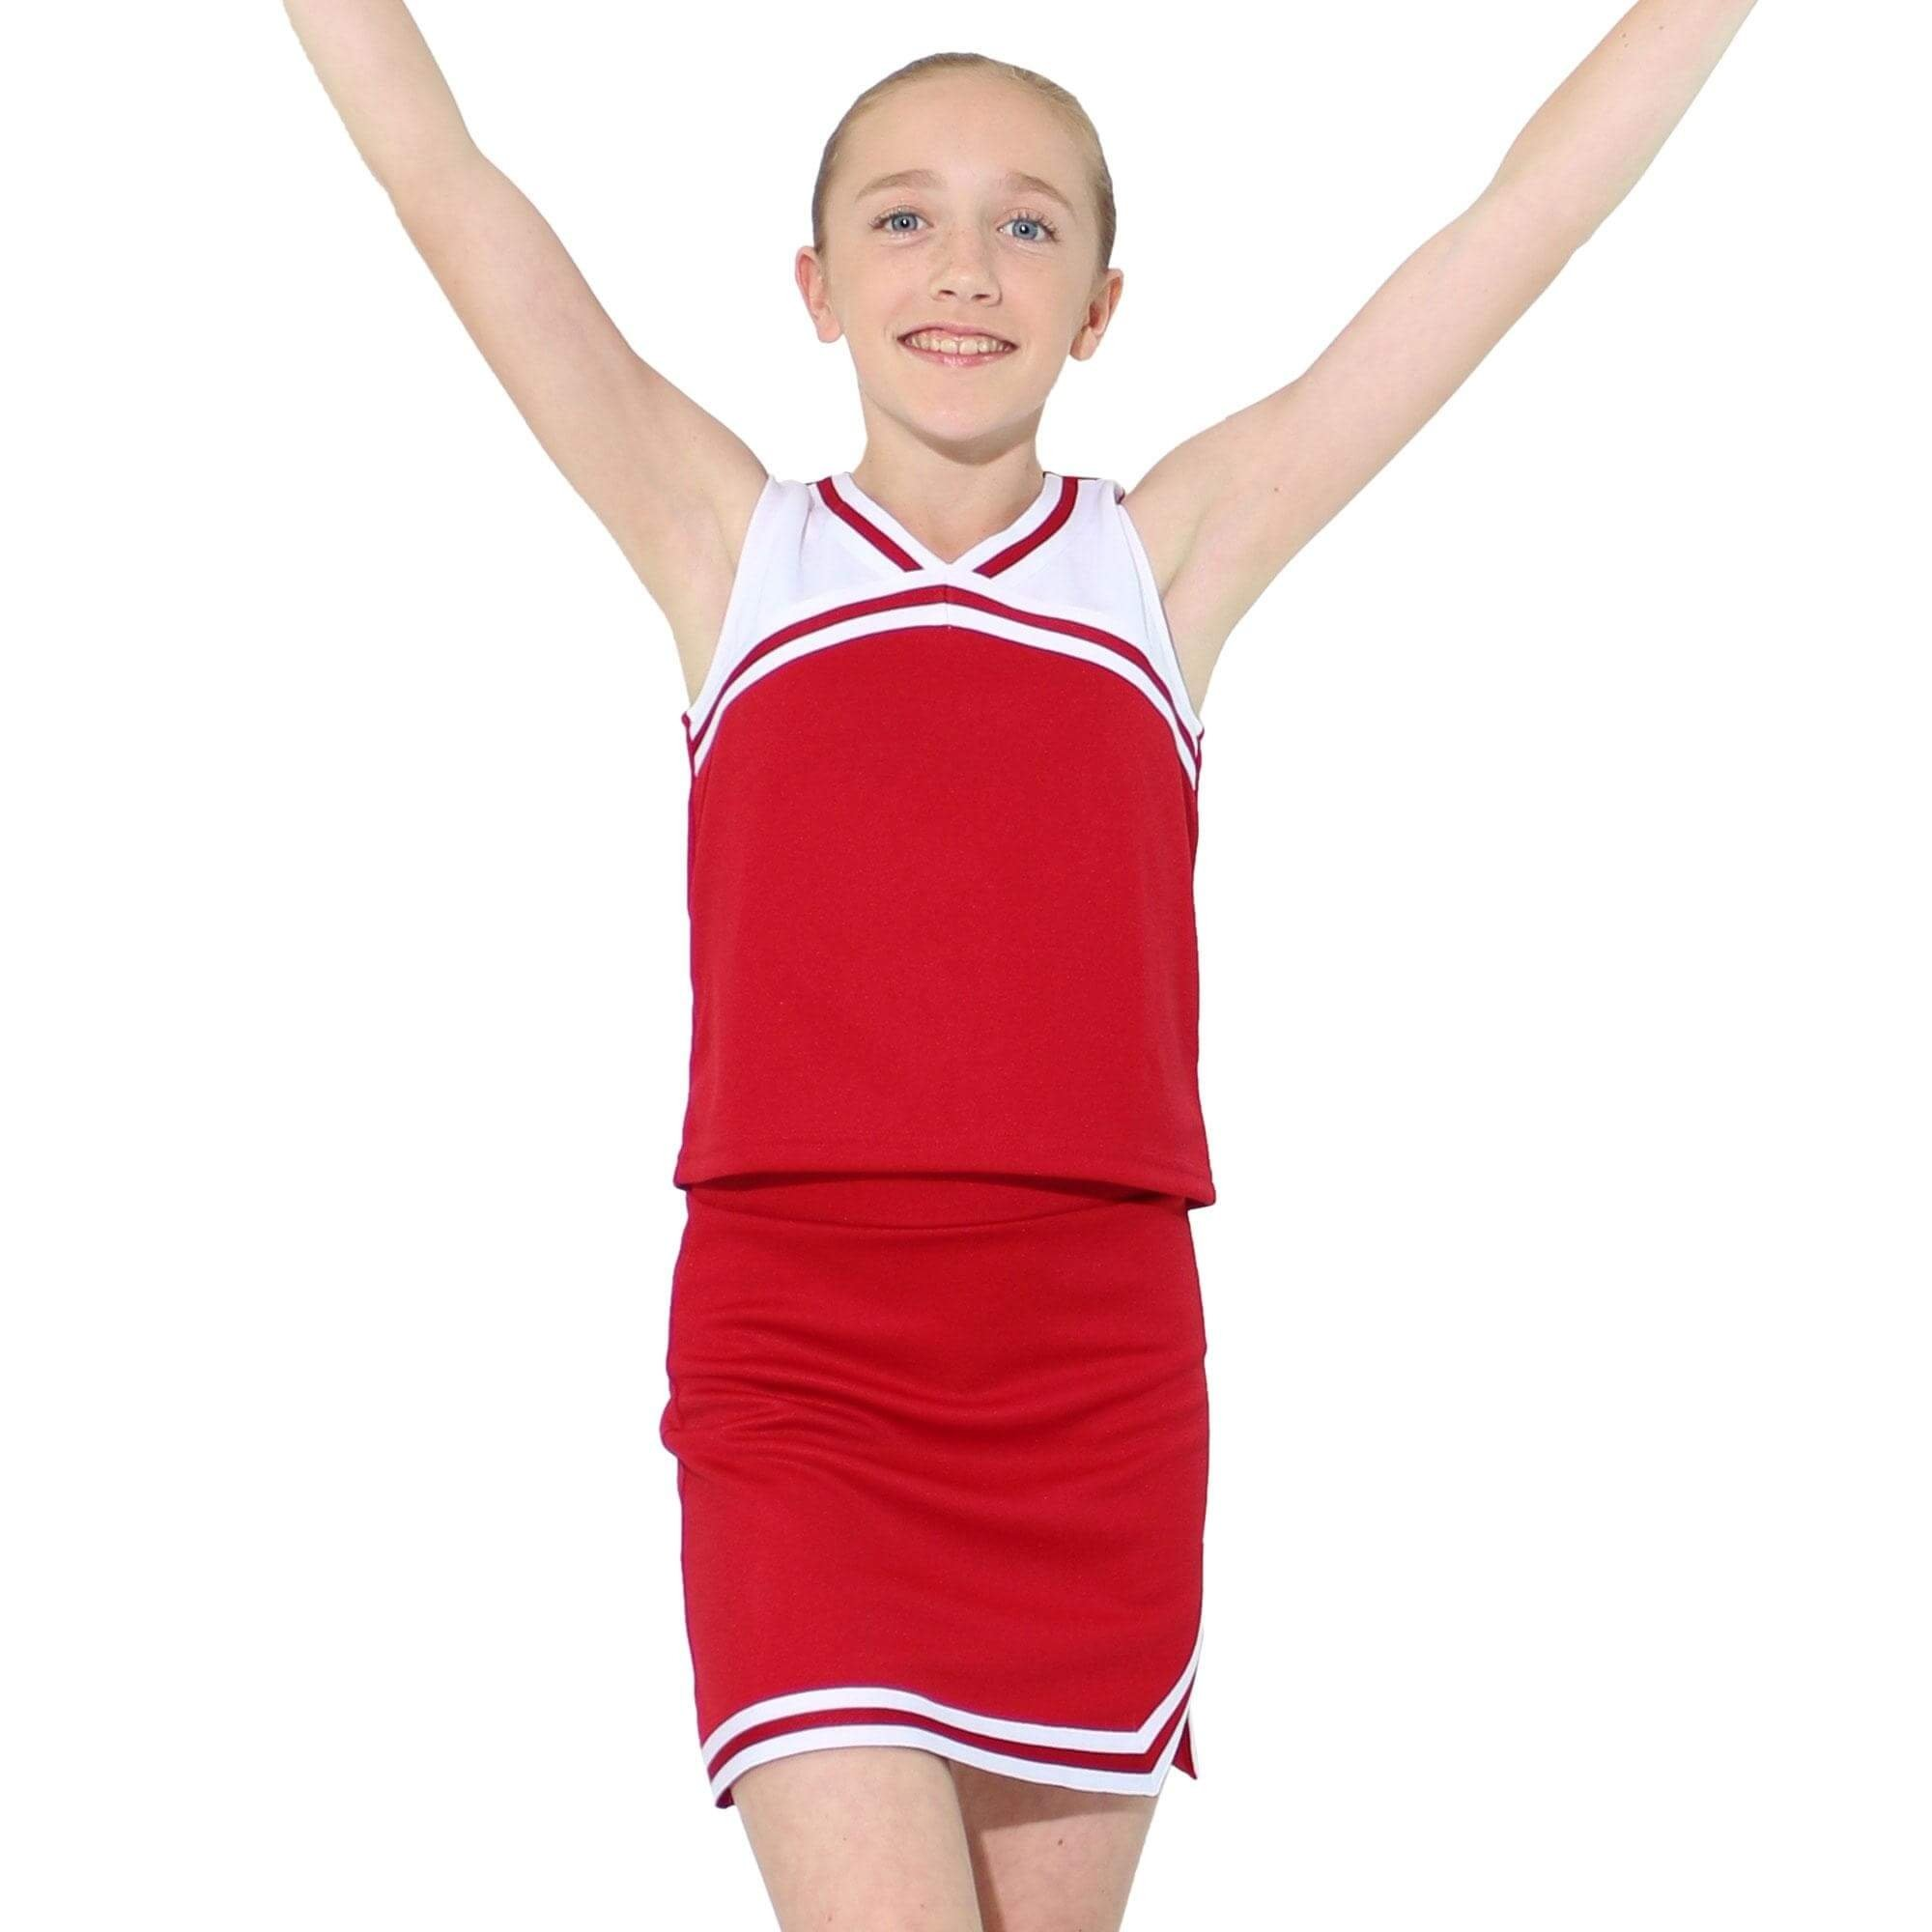 Danzcue Child Classic Cheerleaders Uniform Set